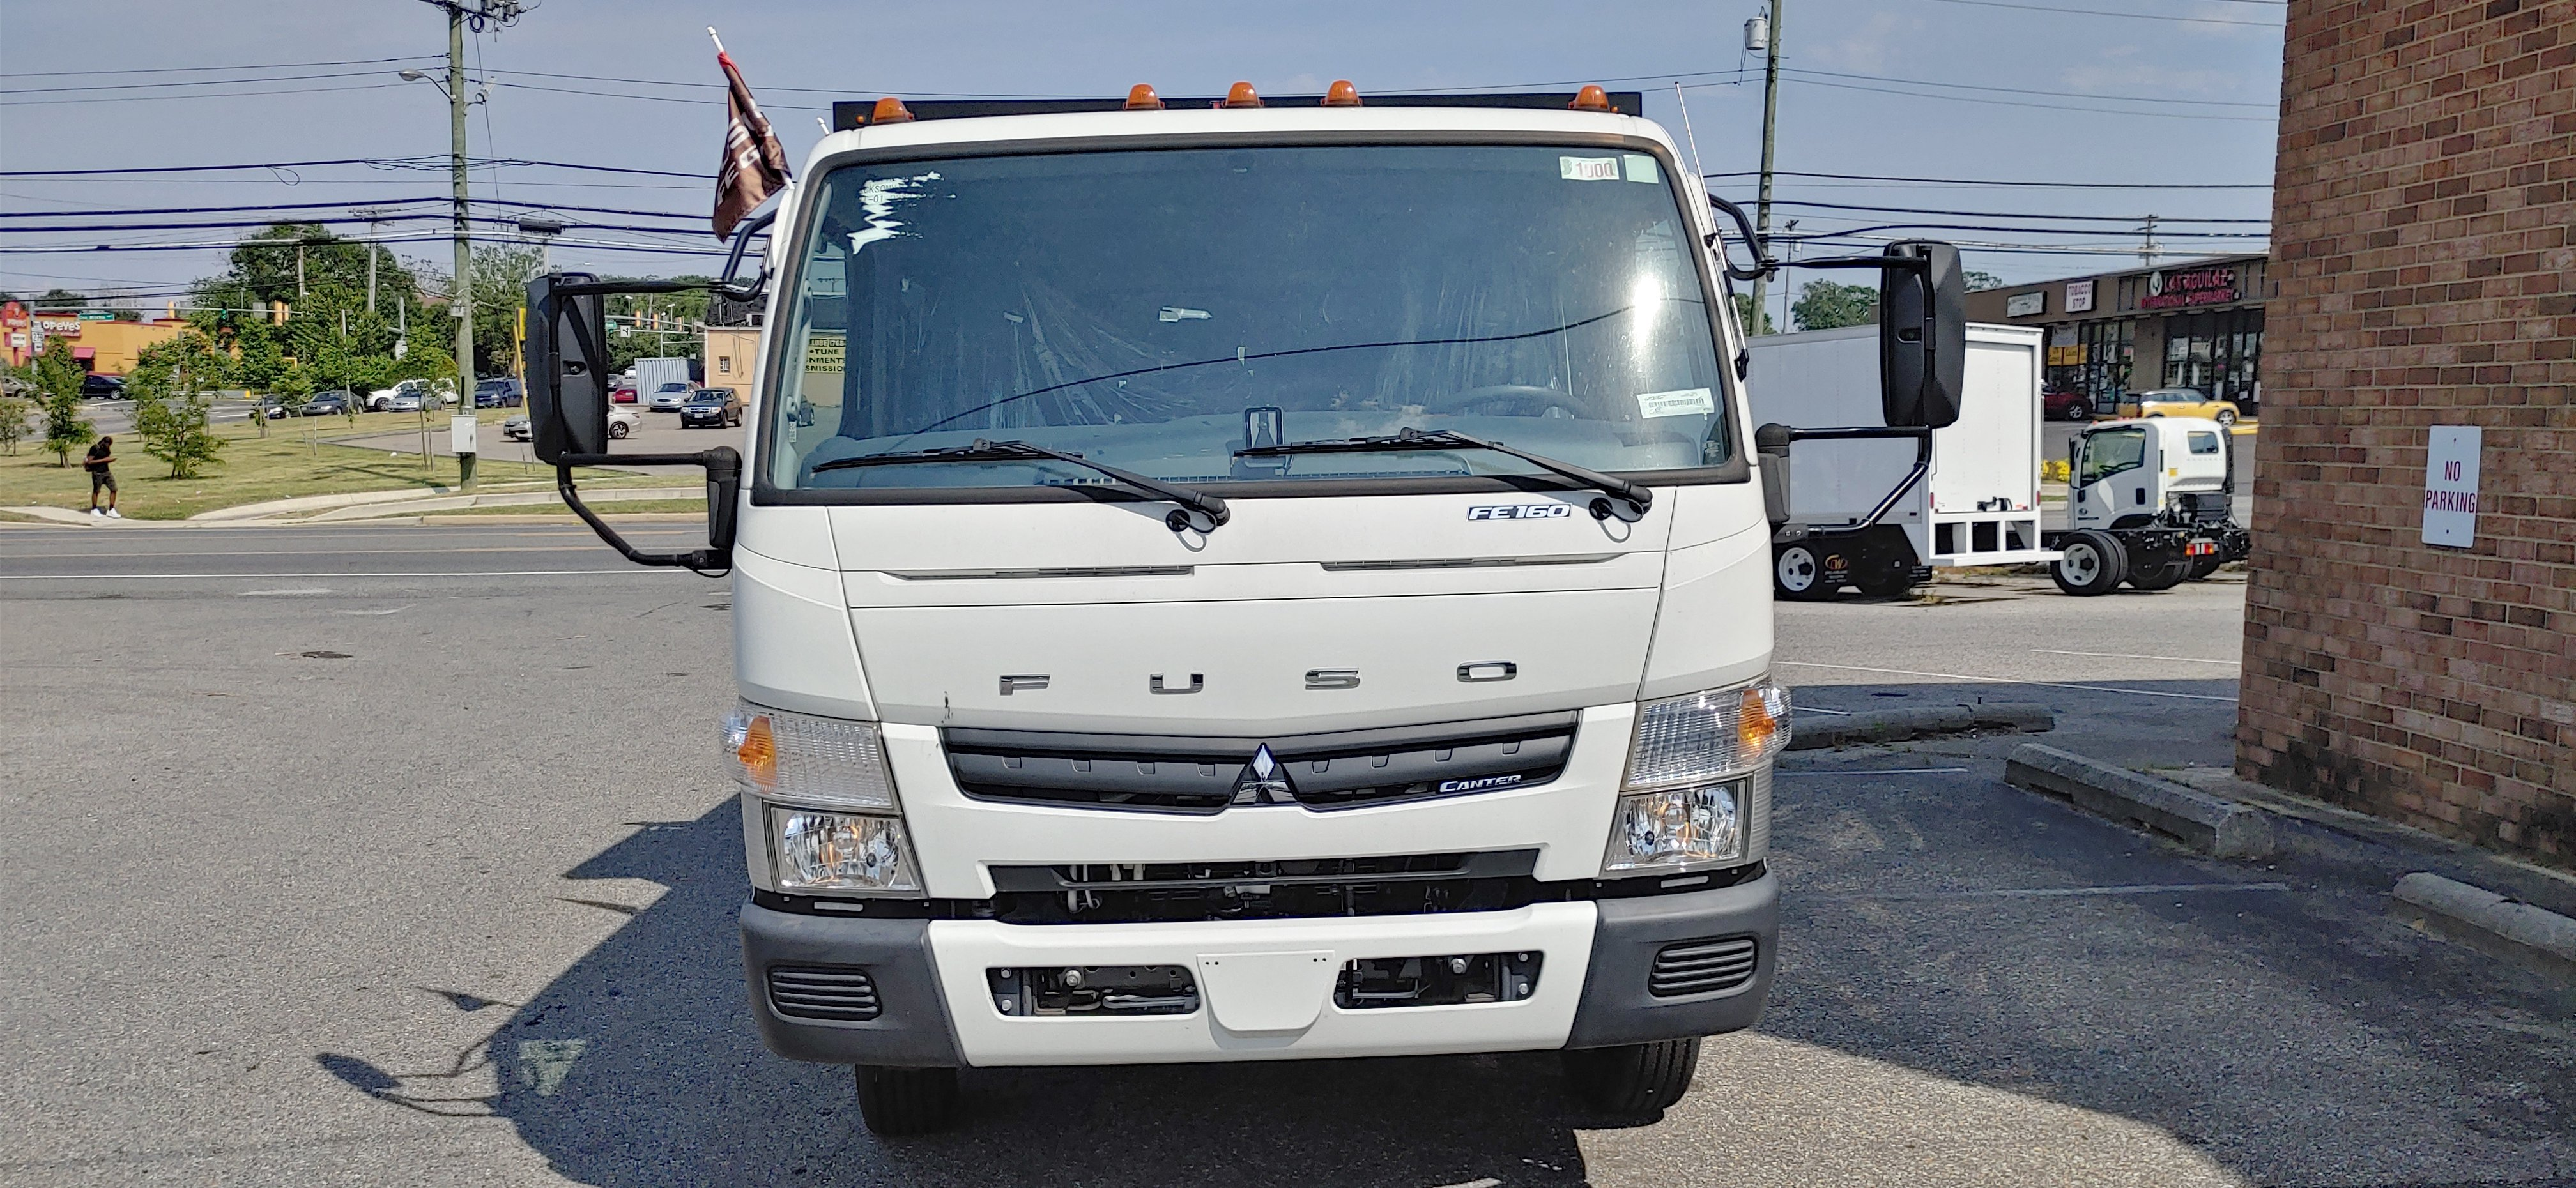 New 2017 Mitsubishi FE160 with Dump Body Crew Cab Recently Discounted 20200604_154533_HDR-e1591303206725-762x456